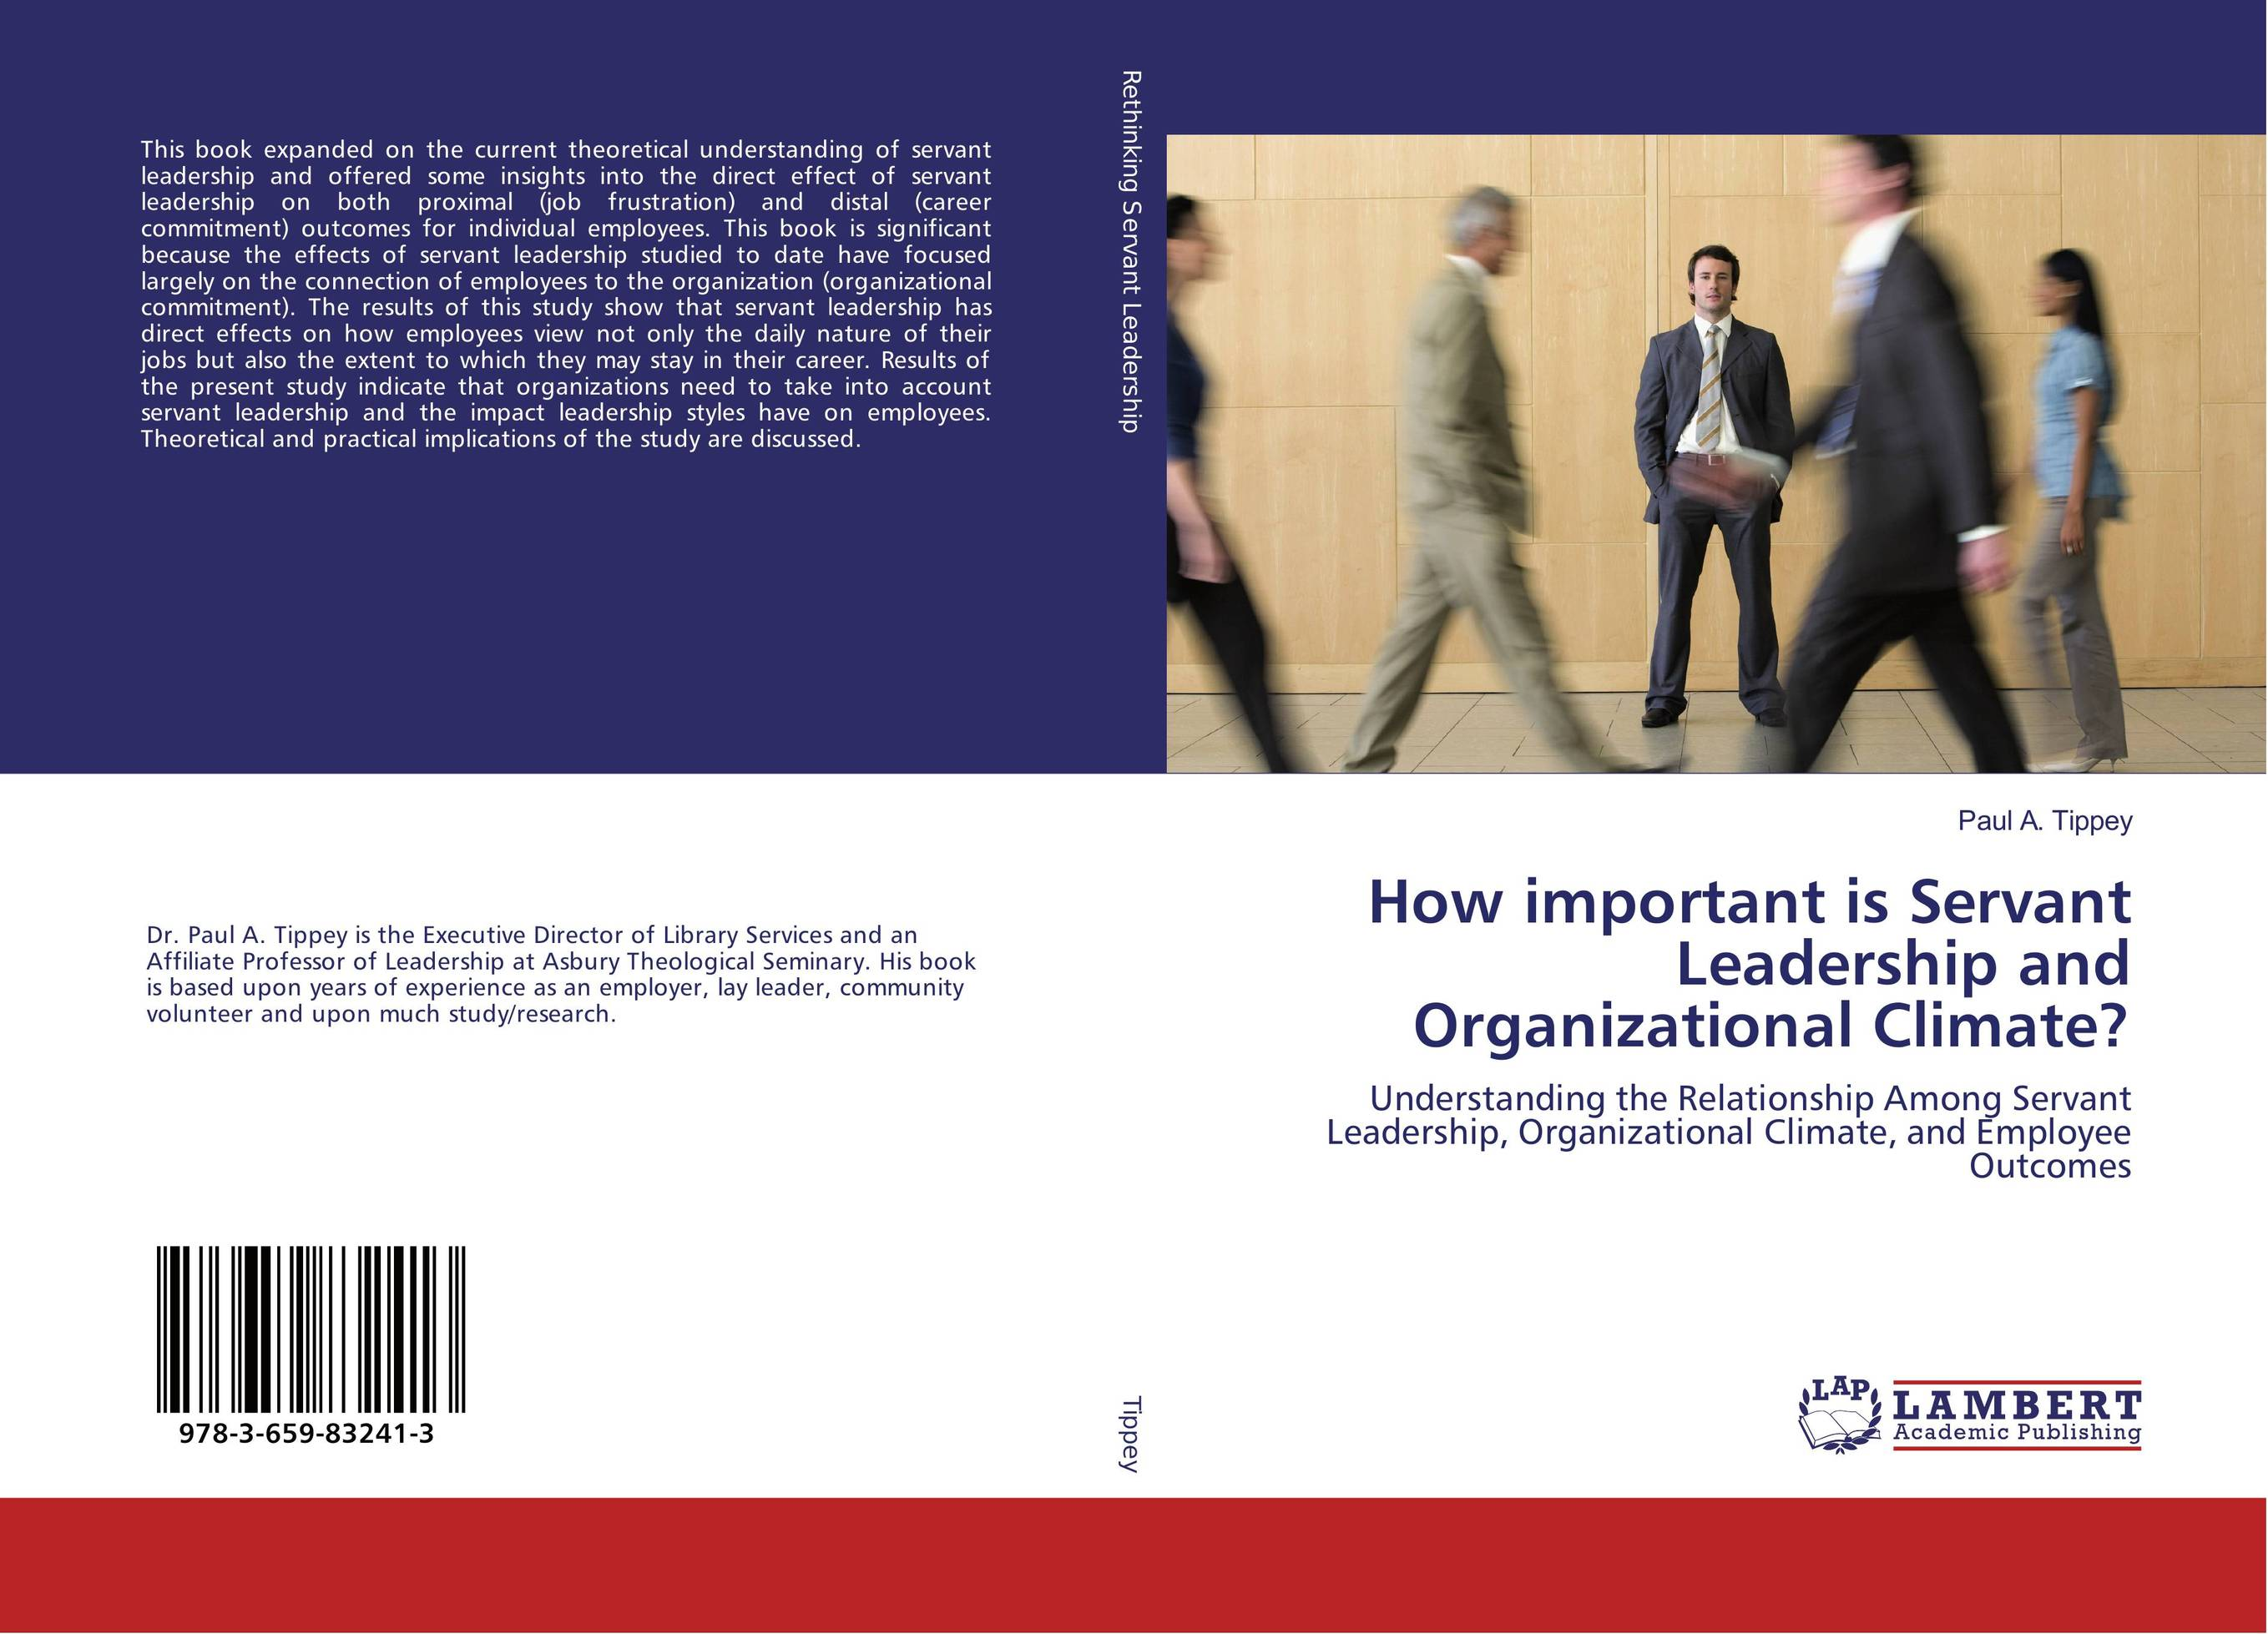 How important is Servant Leadership and Organizational Climate? the impact of organizational politics on employees